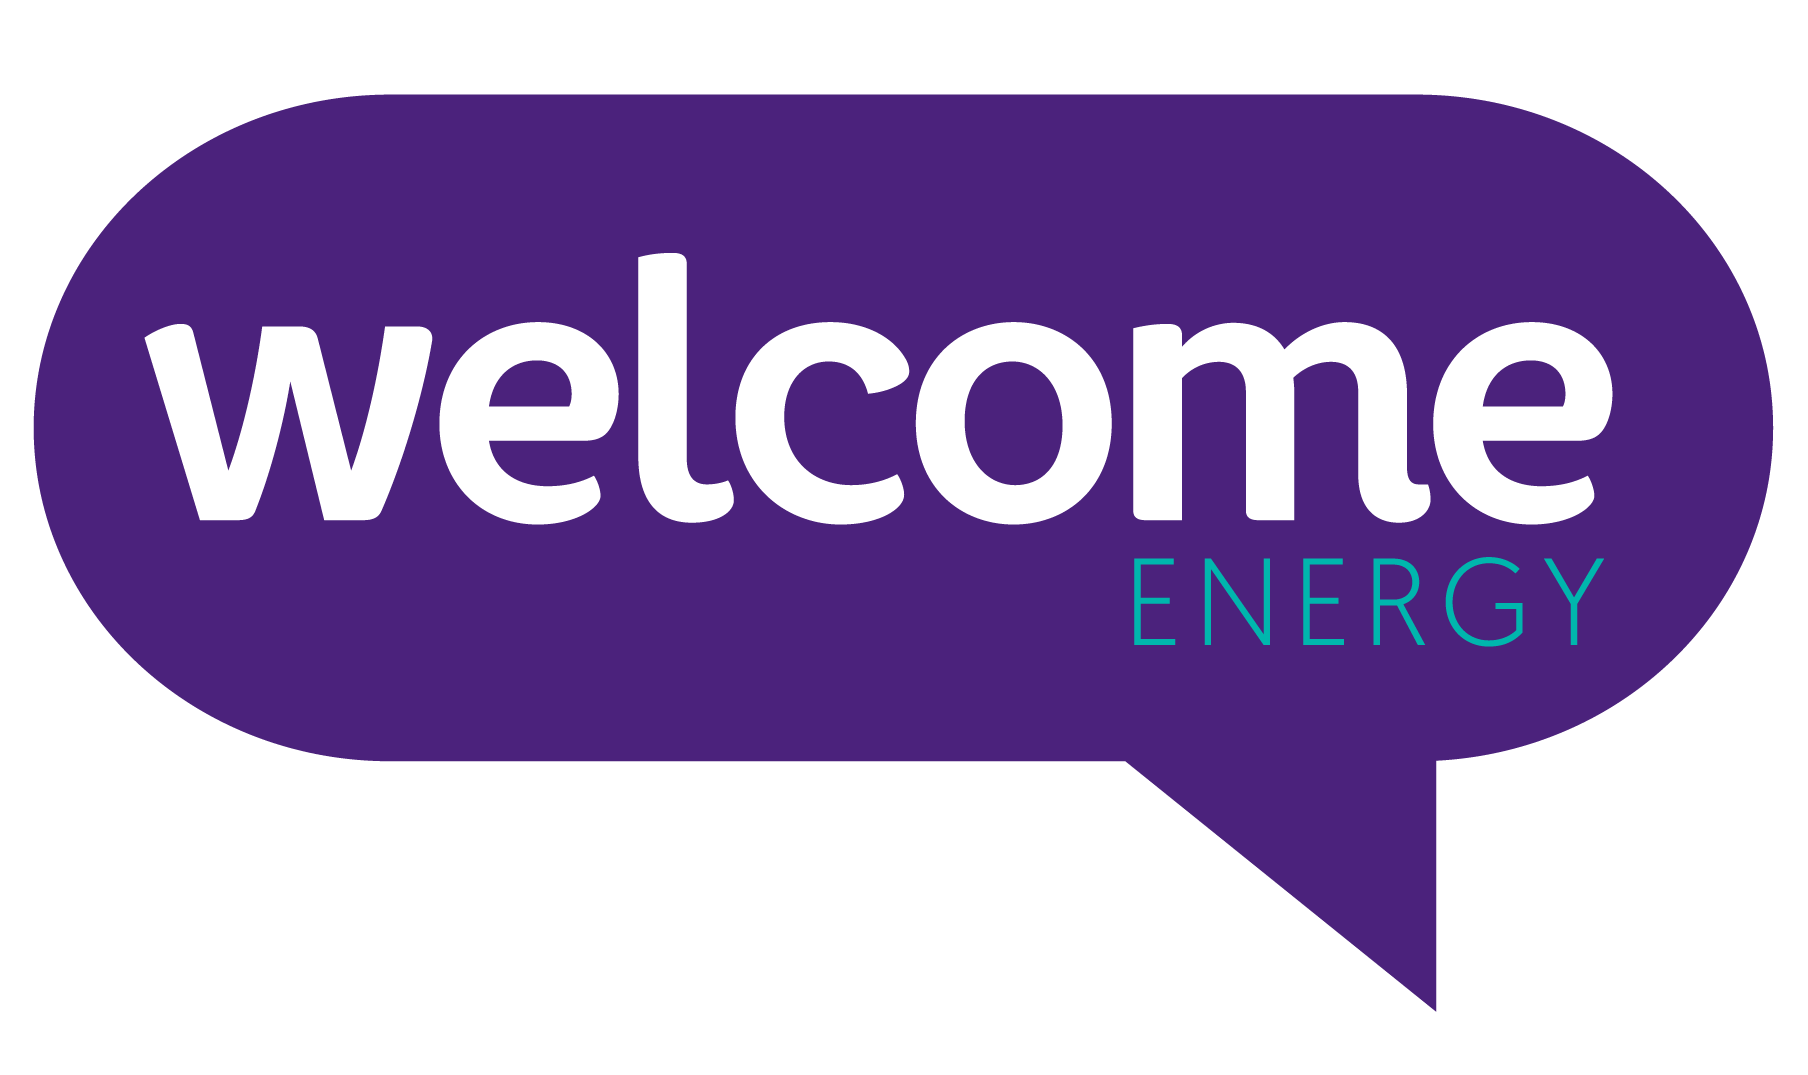 Welcome Energy